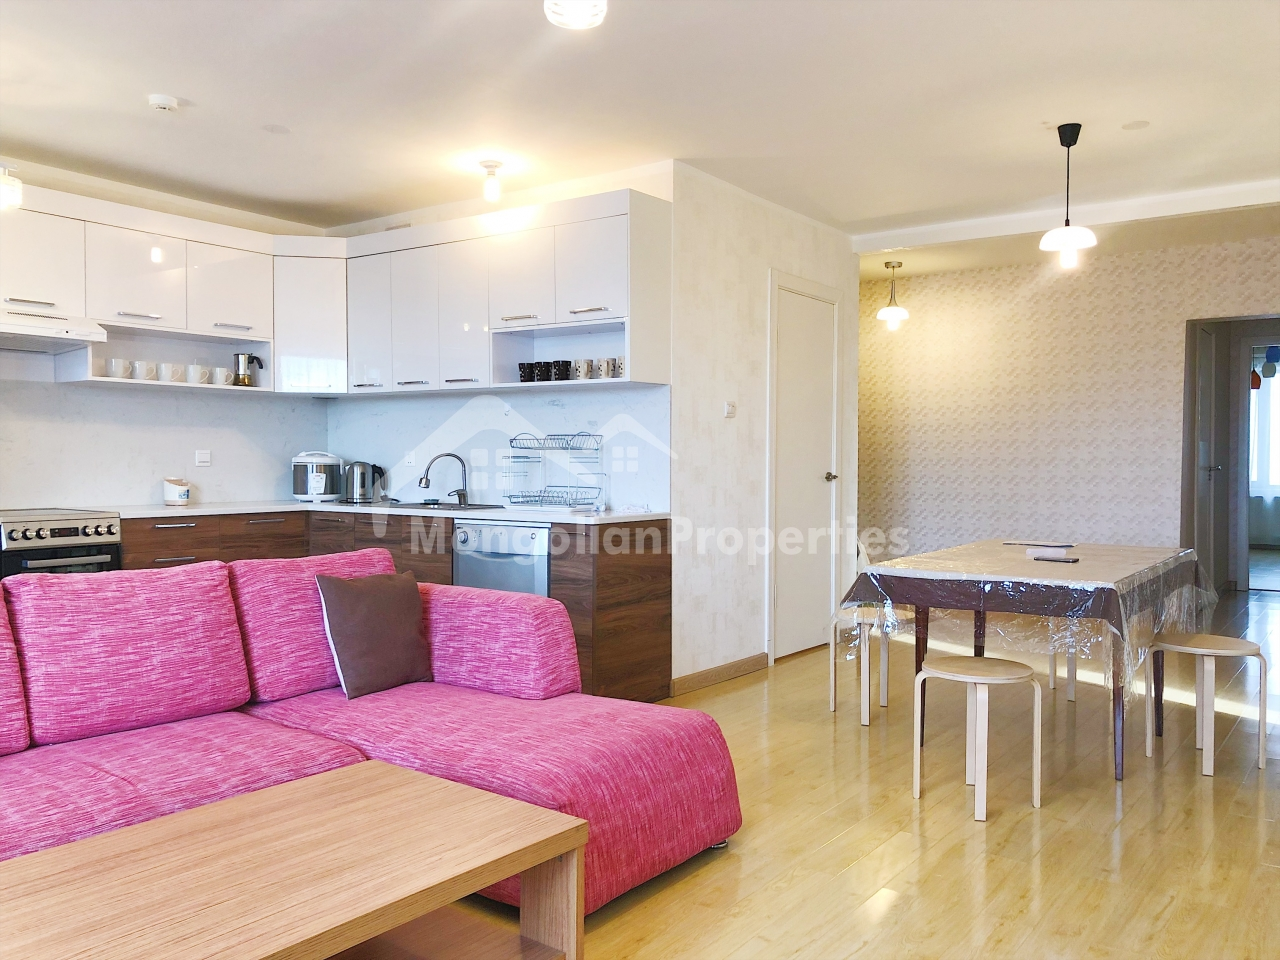 FOR RENT: Spacious 3 bedroom at UBtown / Seoul street / State Dept.